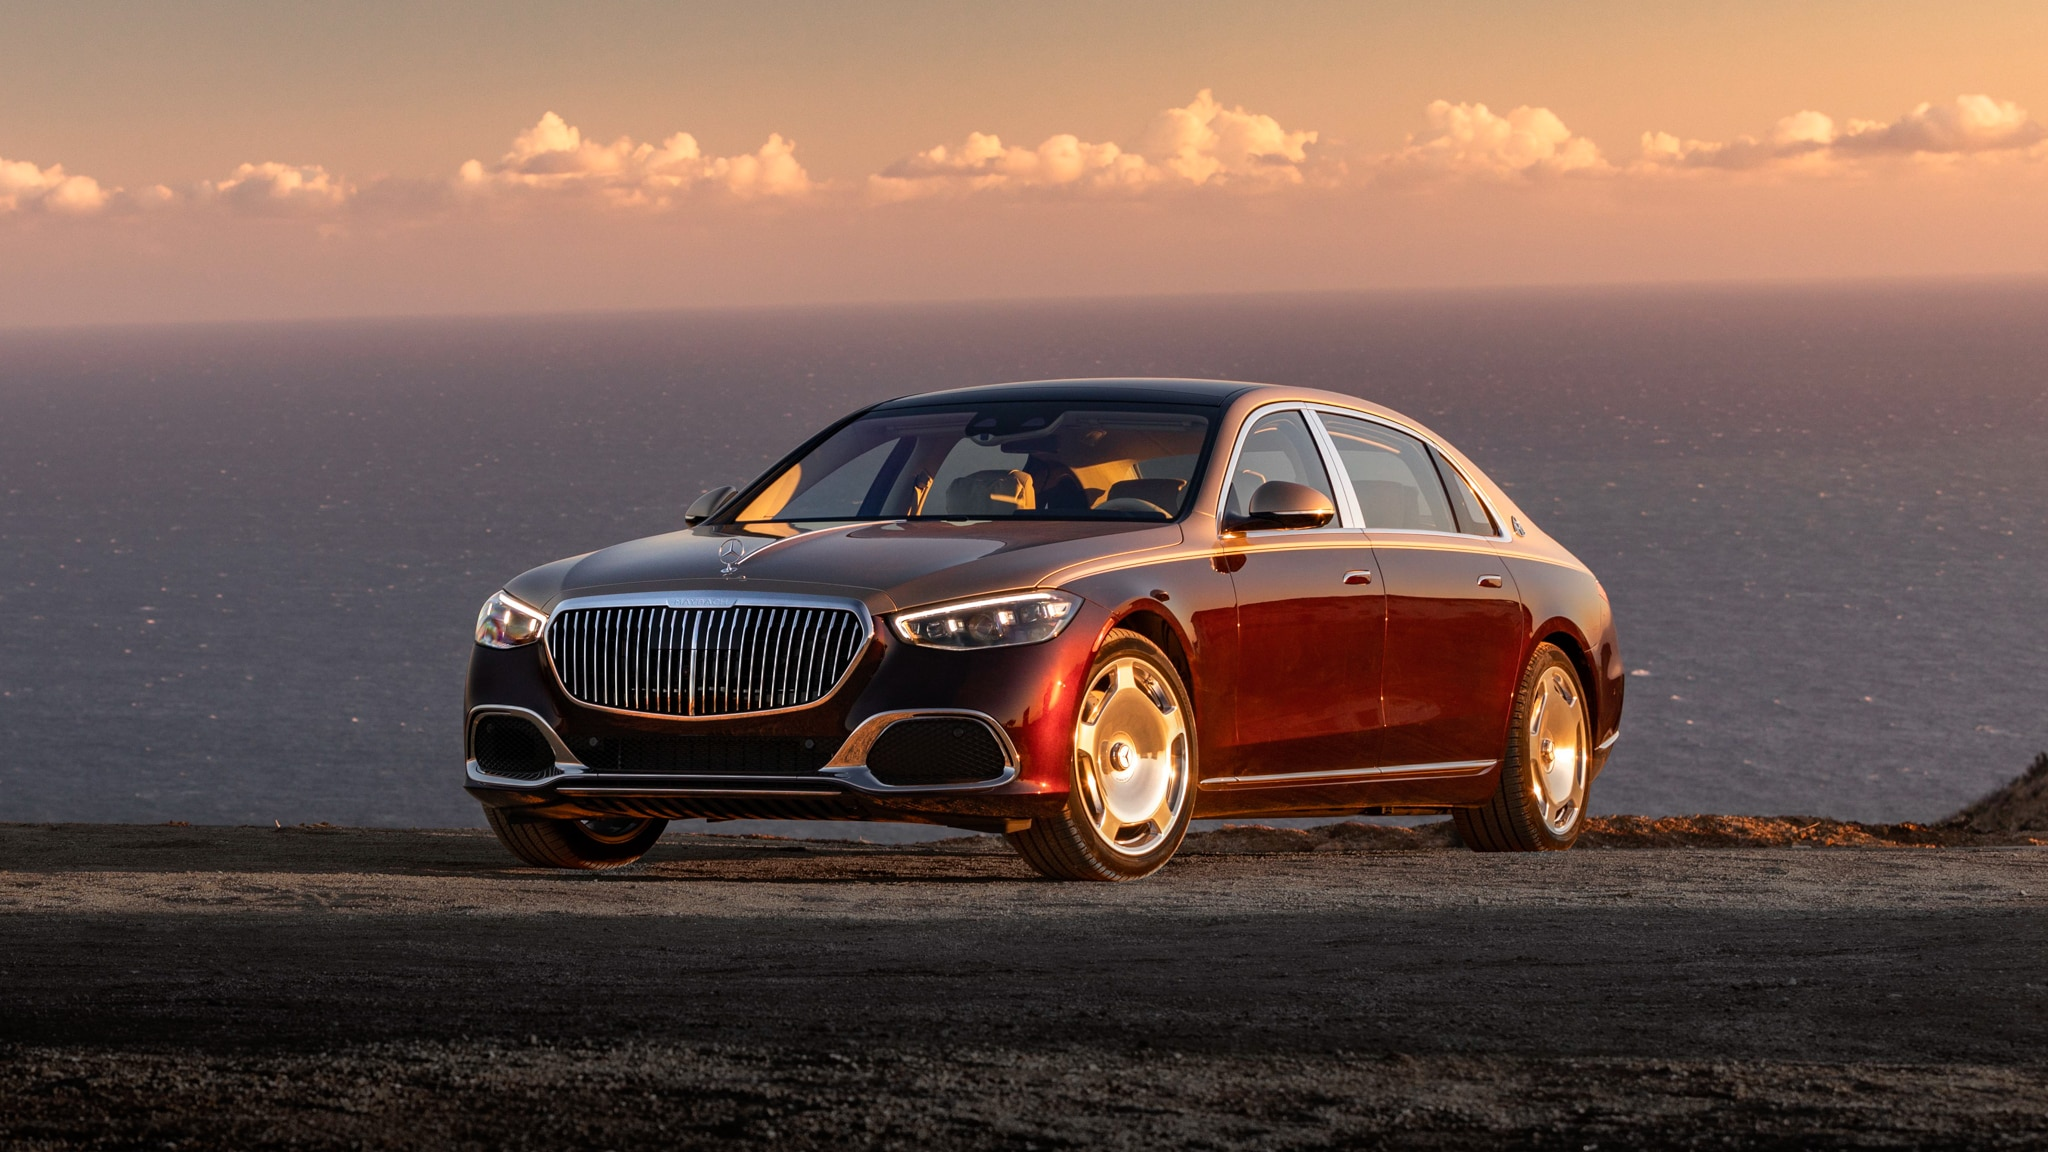 2021 Mercedes Maybach S Class Details A New Level of Luxury 2048x1152